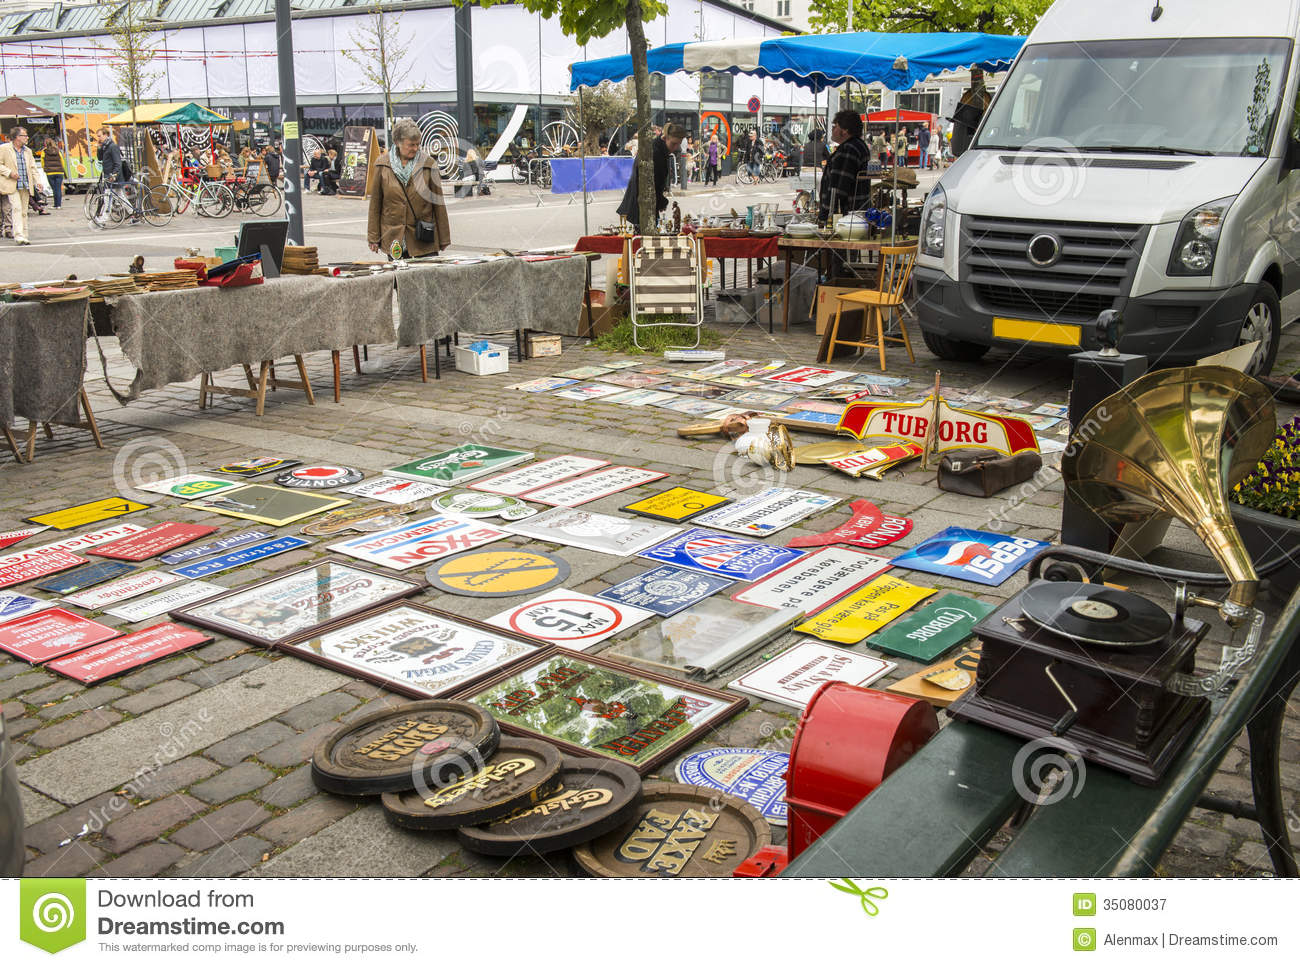 How to Start a Business in a Flea Market